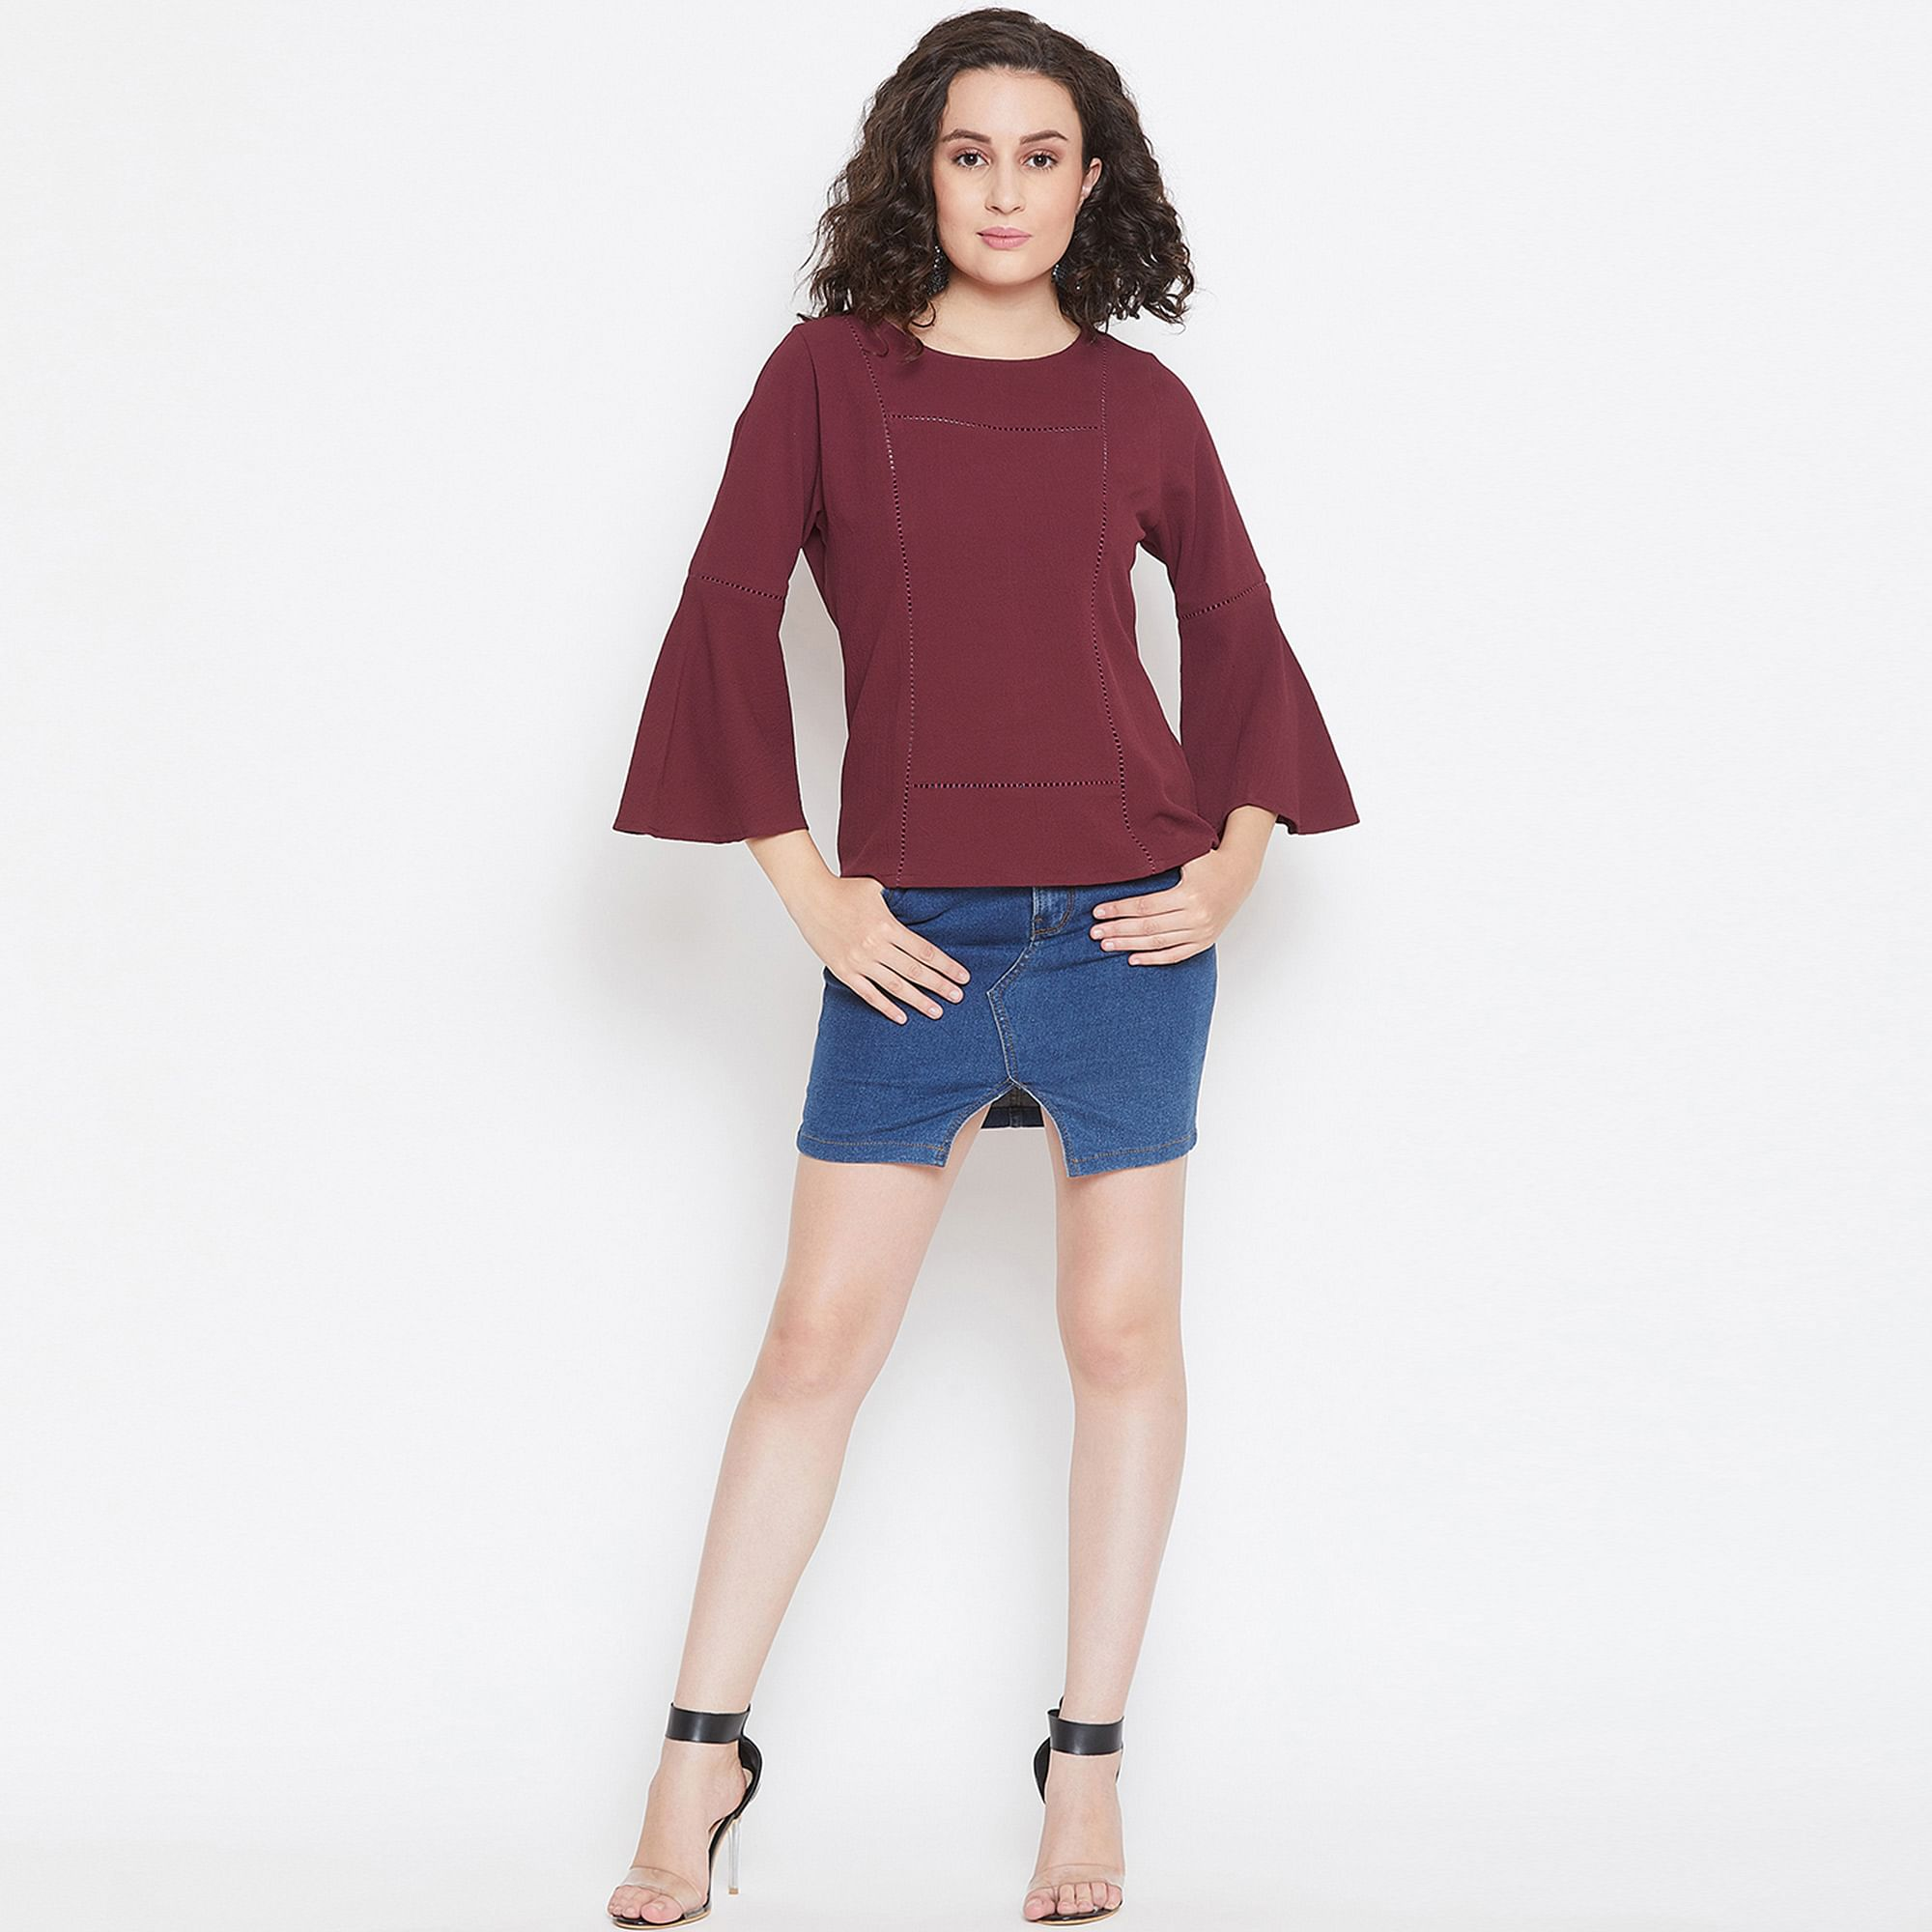 Mesmerising Wine Colored Casual Wear Ladder Lace Crepe Top